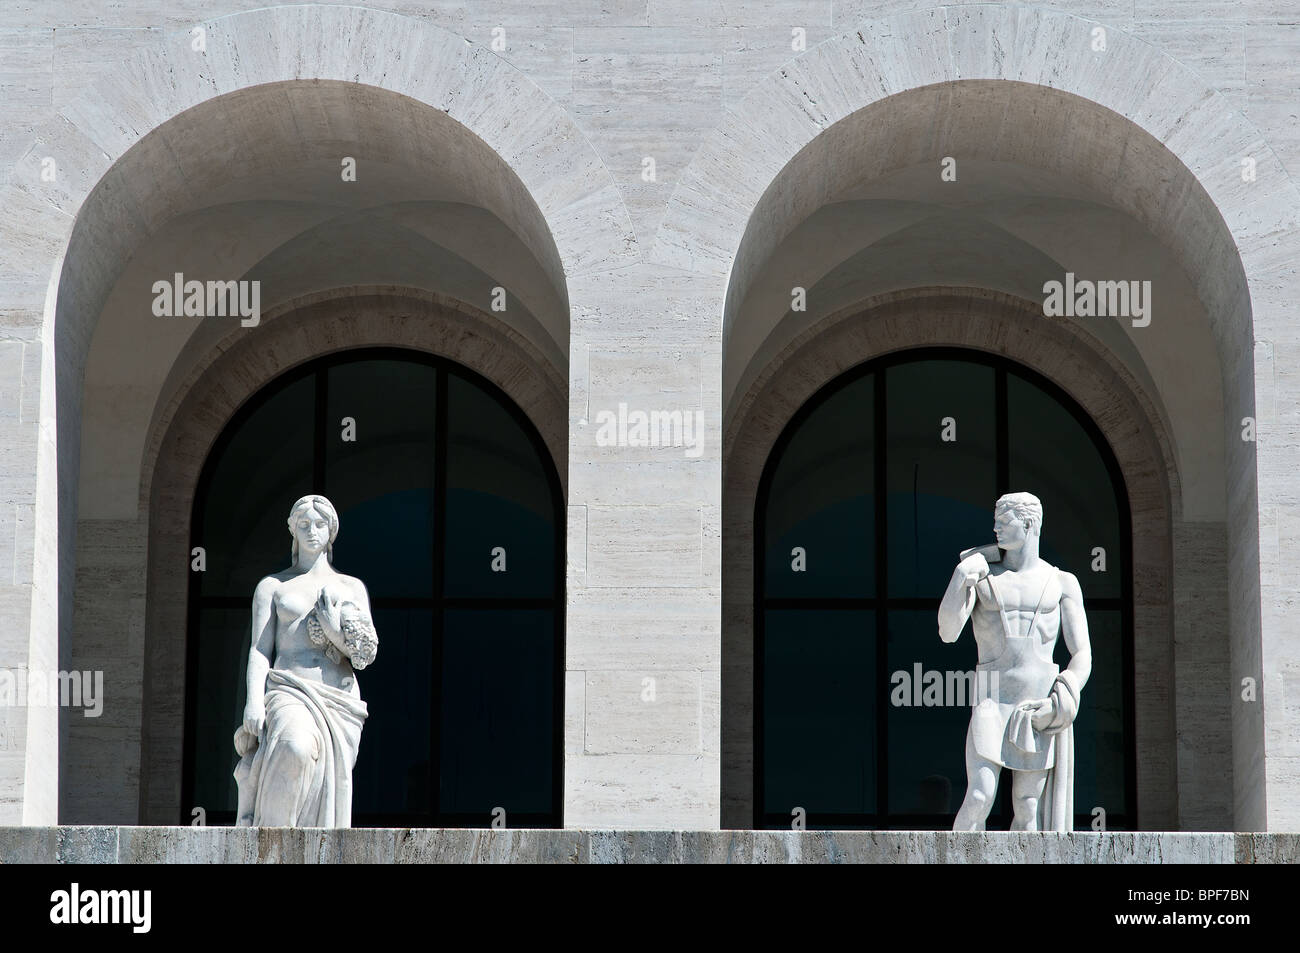 Detail of Palazzo della Civiltà Italiana building, icon of Fascist architecture, EUR district, Rome, Italy - Stock Image